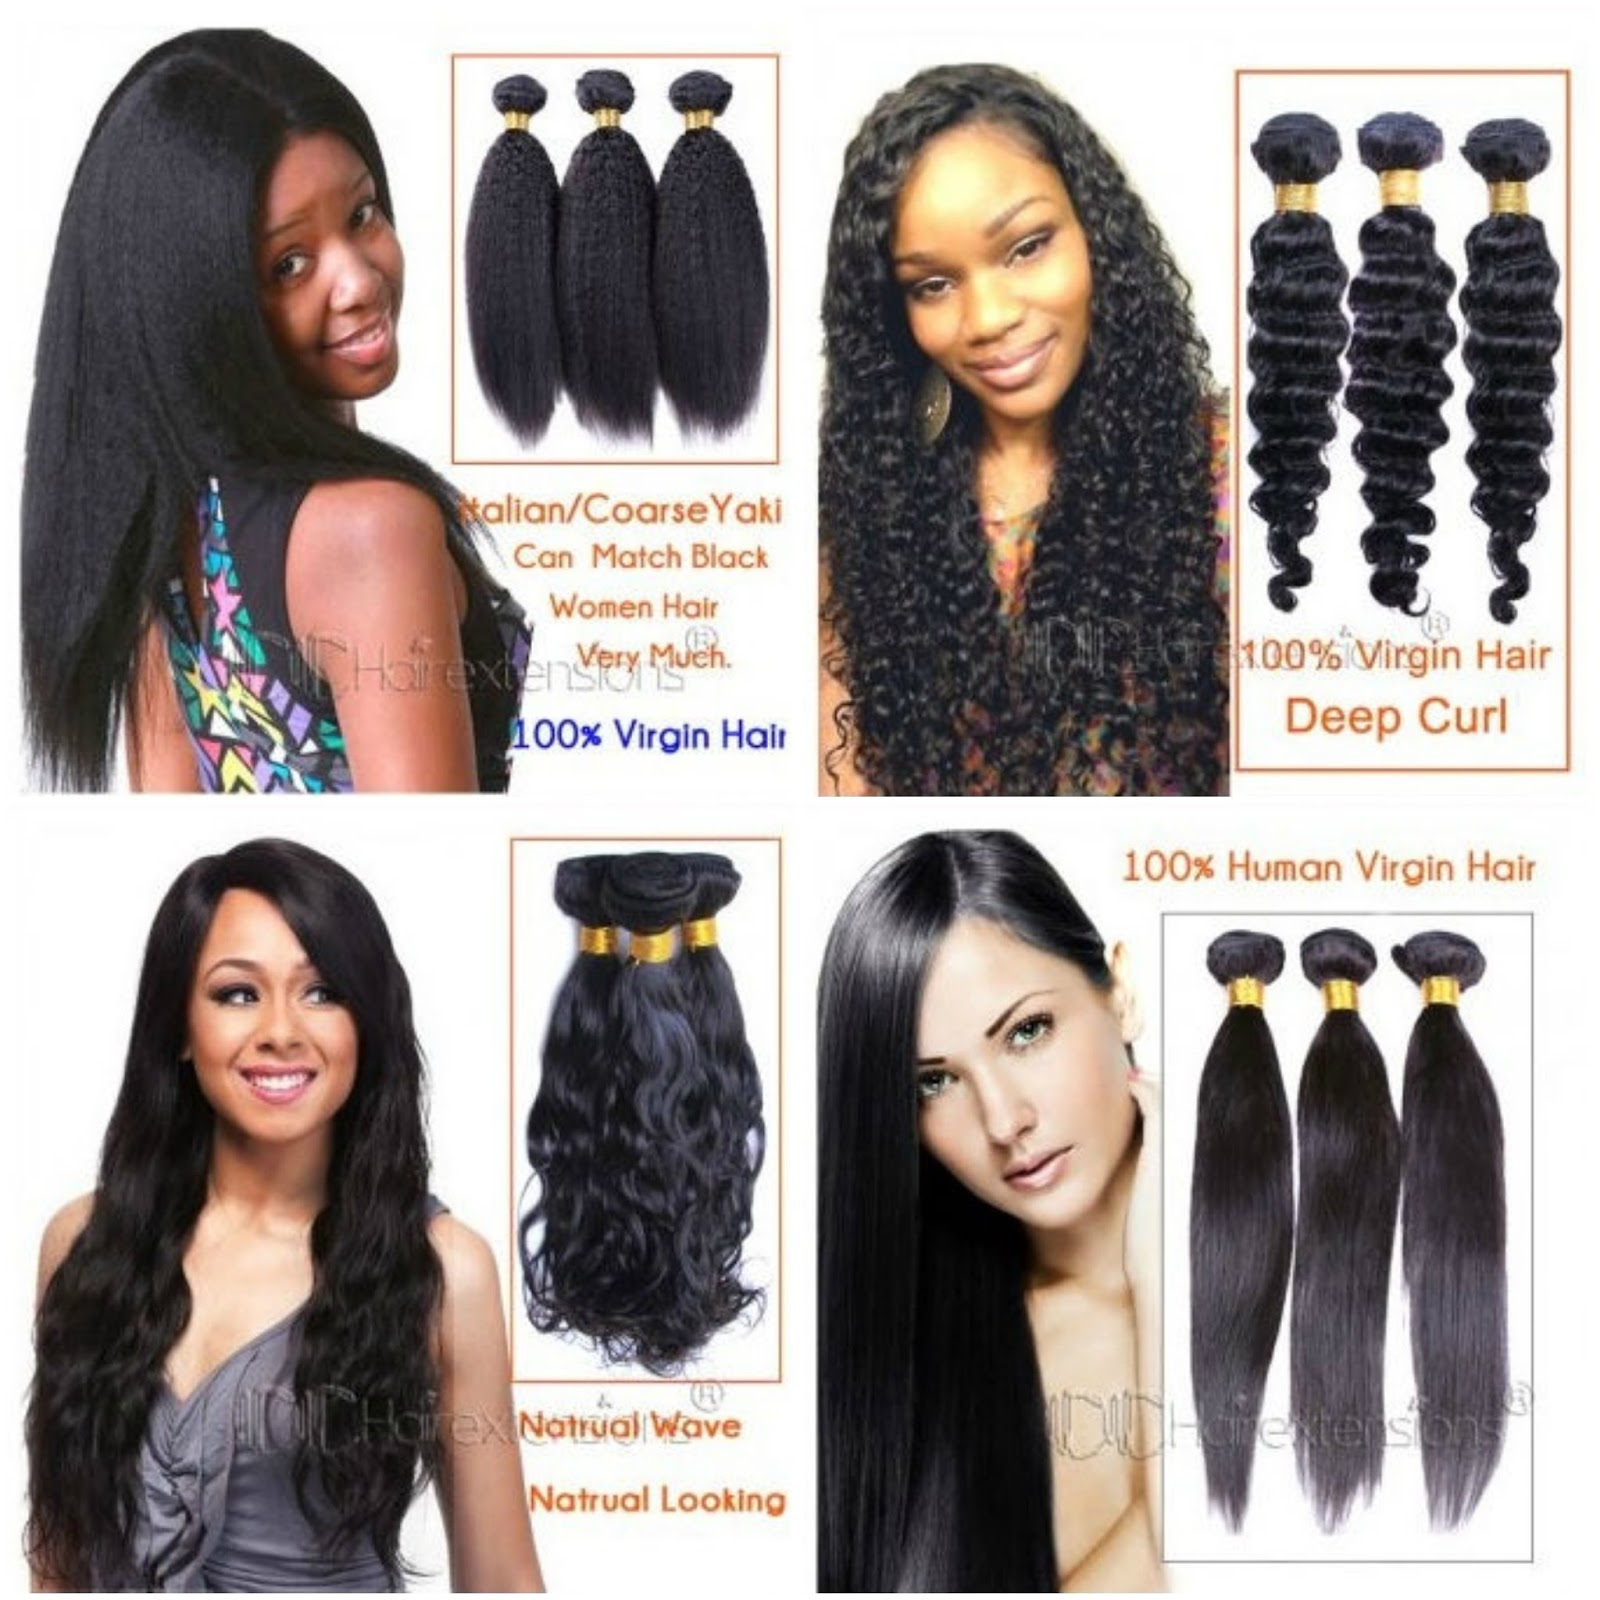 Cc Hair Extensions Chaste Beautiful